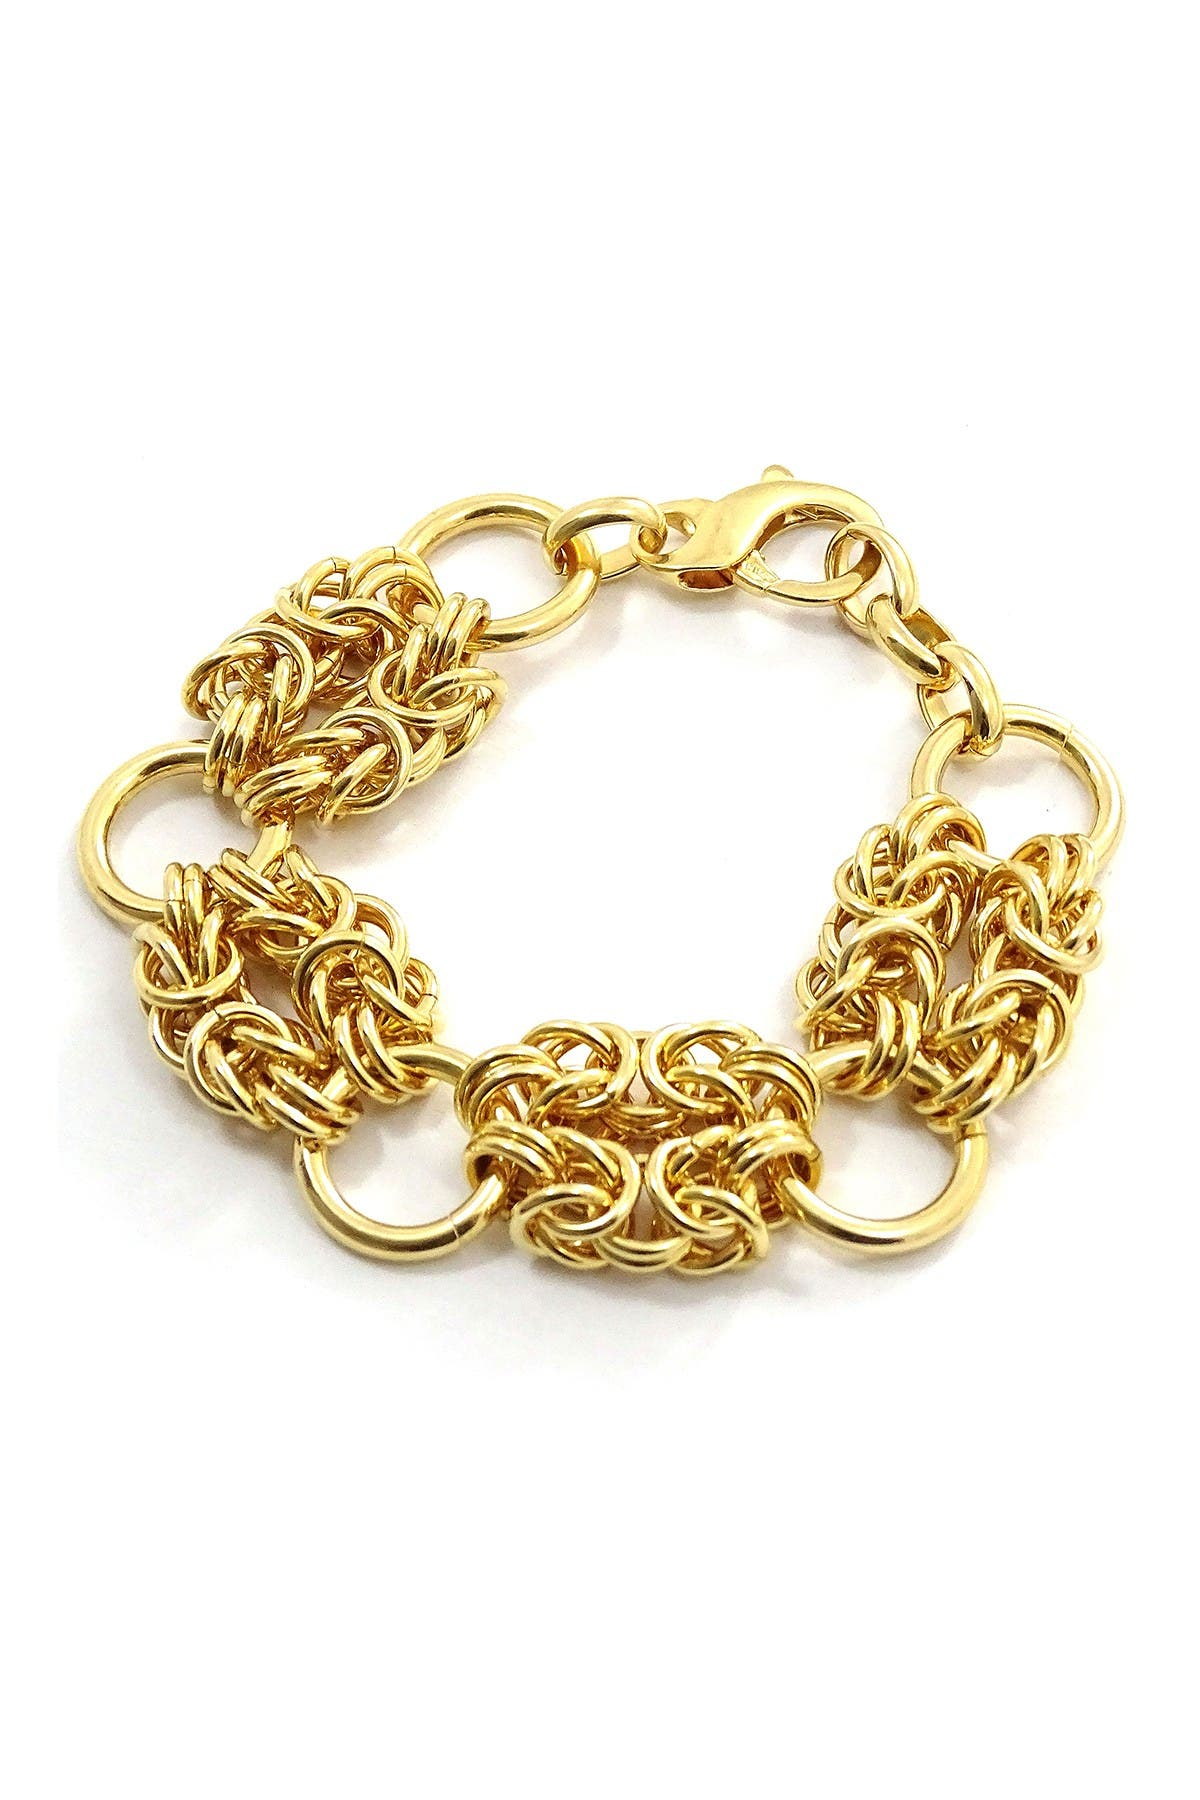 Savvy Cie Italian 18K Yellow Gold Plated Byzantine Link Bracelet at Nordstrom Rack